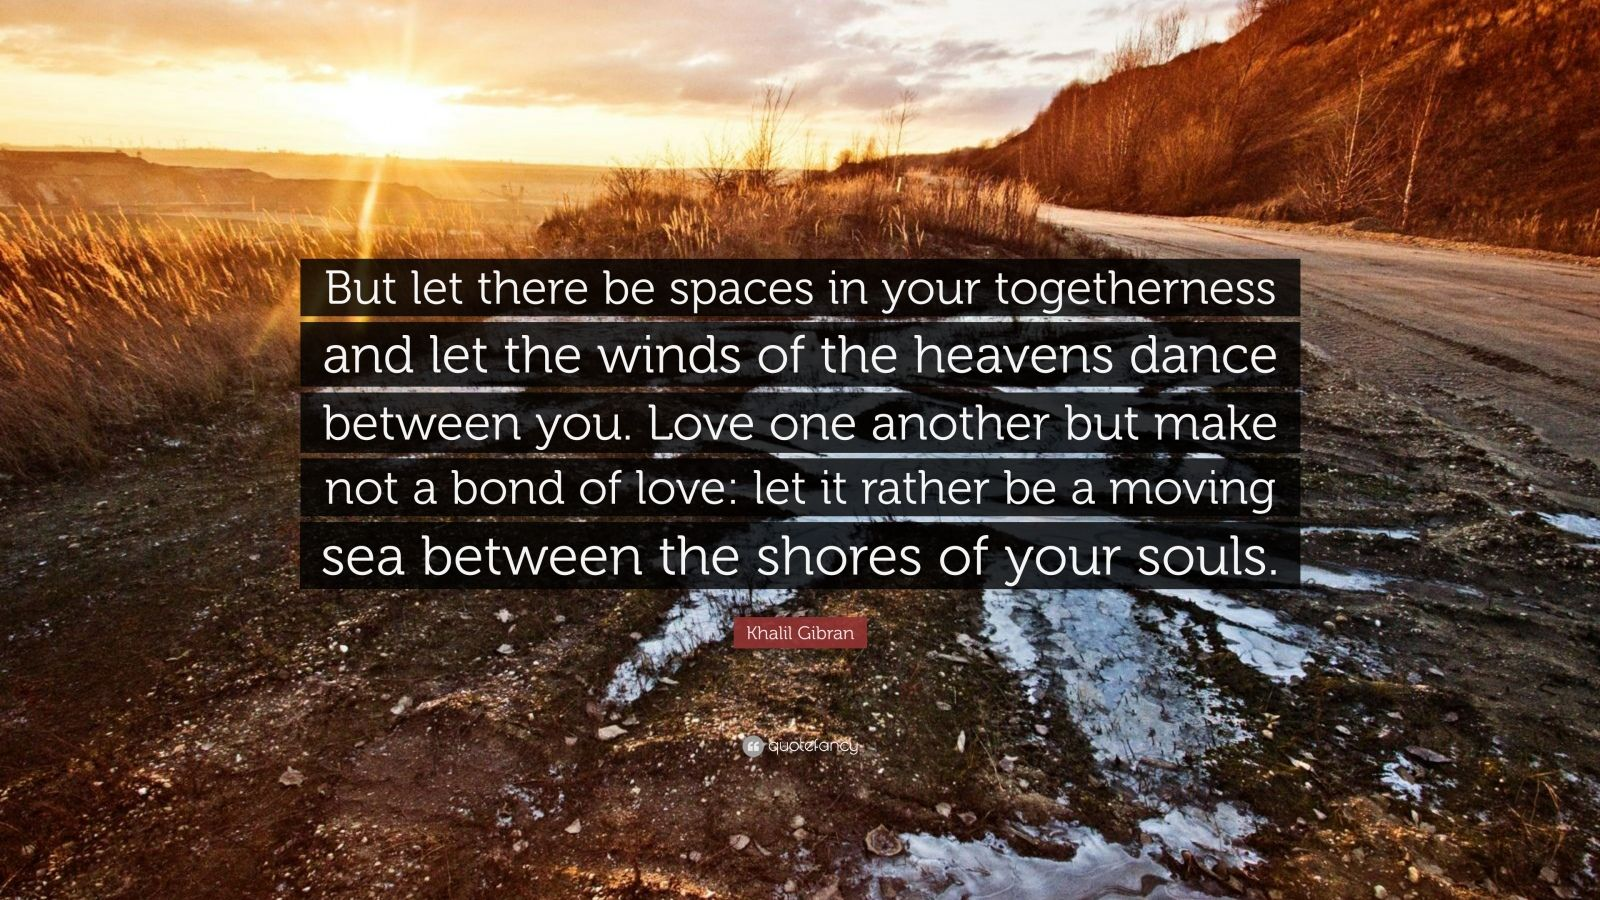 "Khalil Gibran Quote: ""But let there be spaces in your togetherness and let the winds of the heavens dance between you. Love one another but make not a bond of love: let it rather be a moving sea between the shores of your souls."""